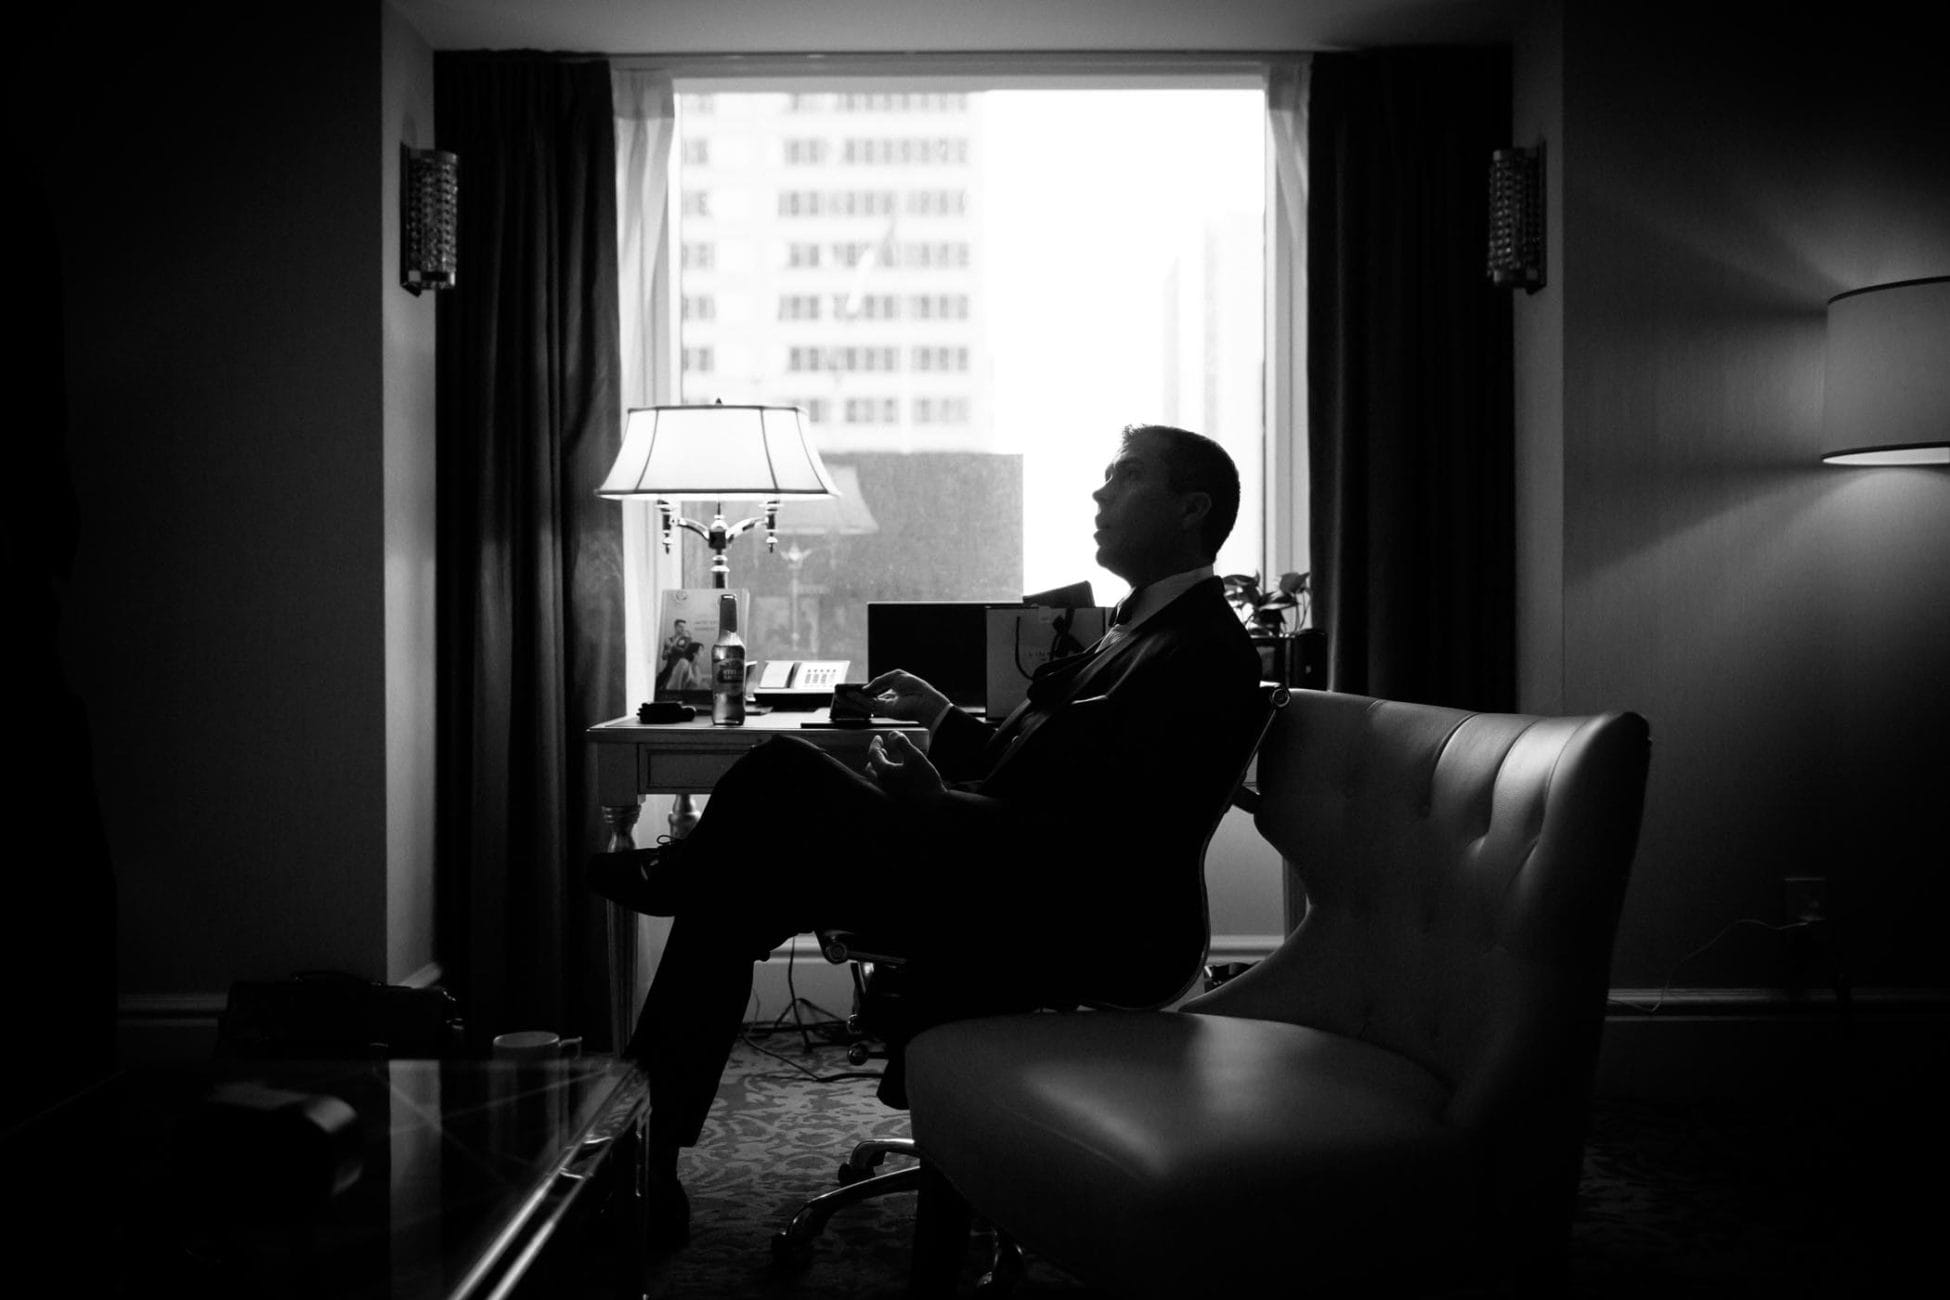 A silhouette of the groom against large square window of Trump Hotel wedding in Toronto